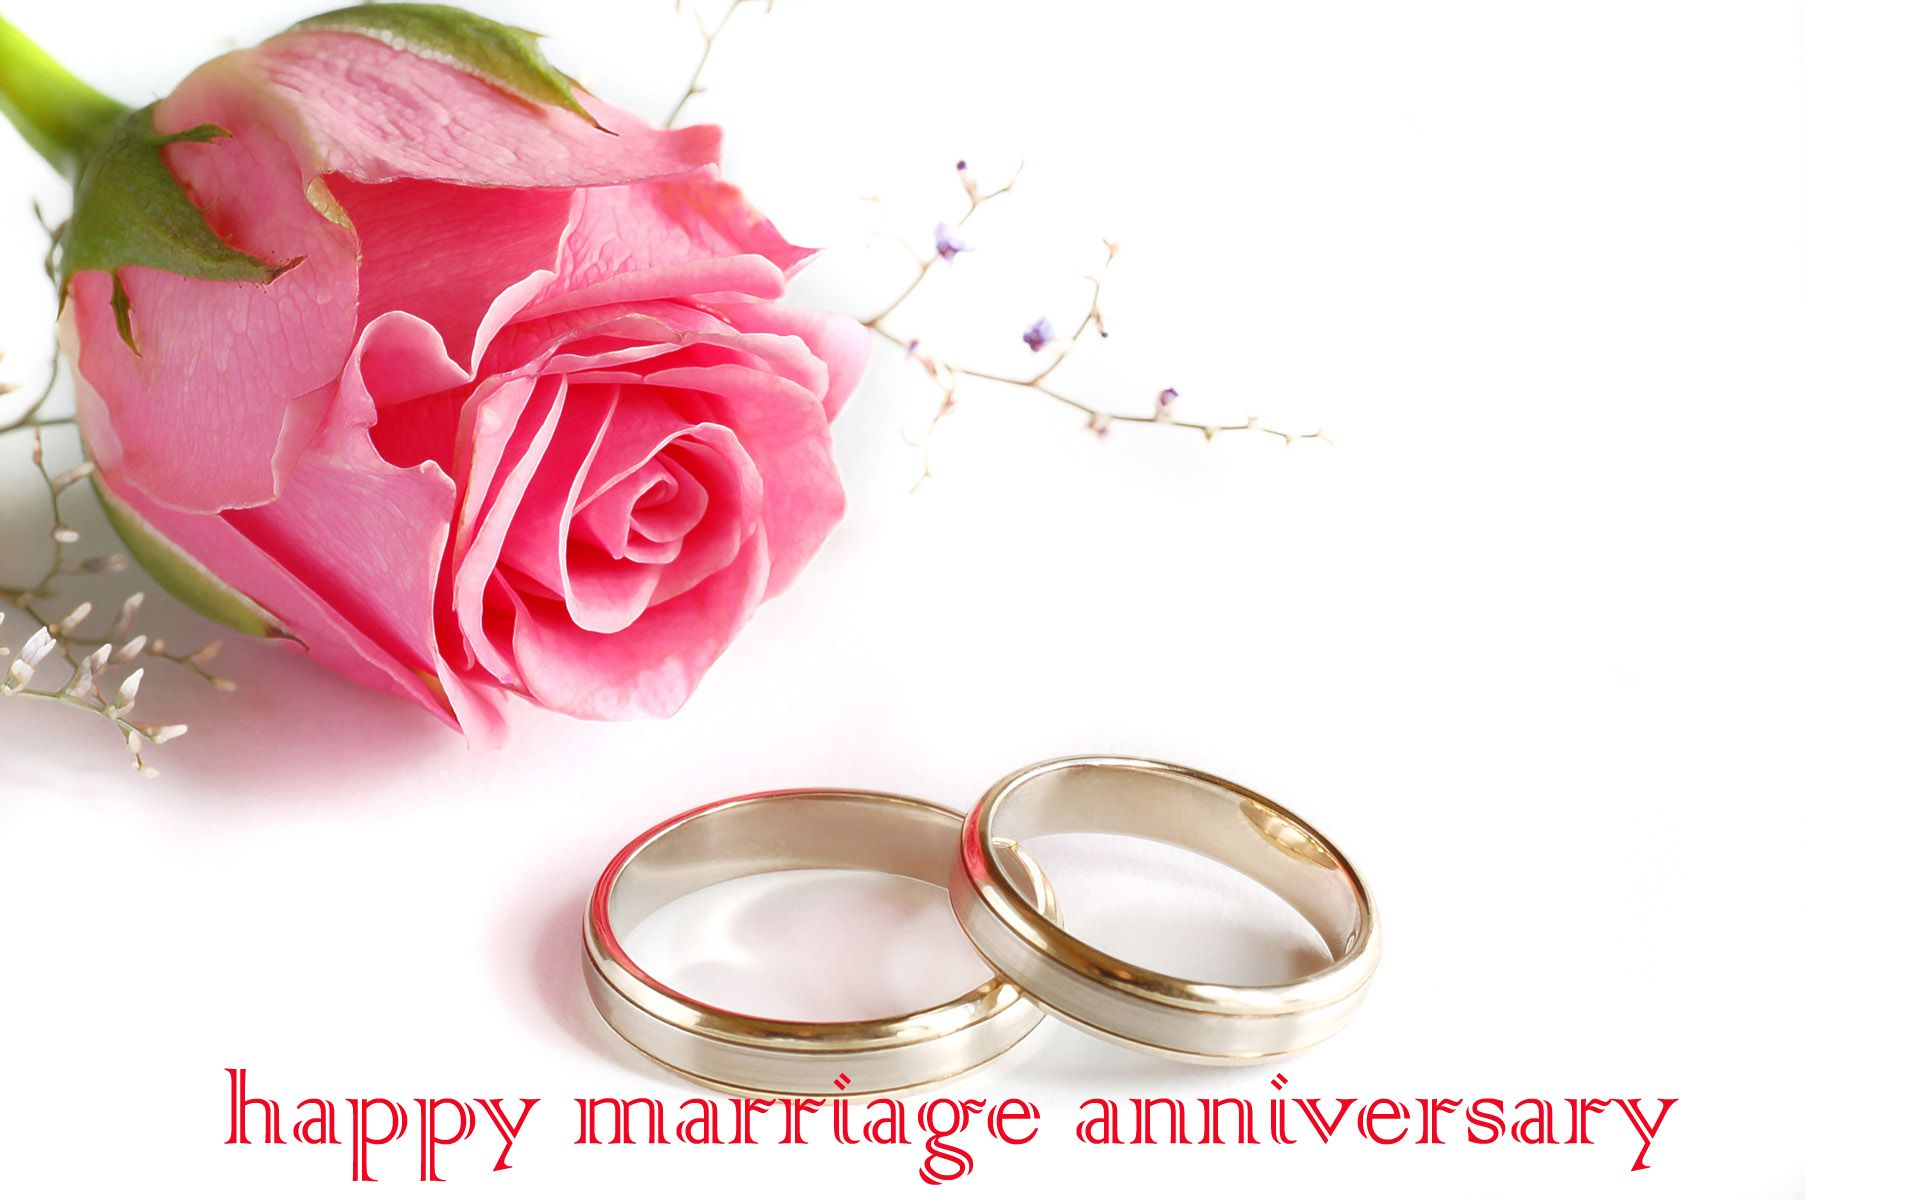 Wedding Anniversary Wallpaper